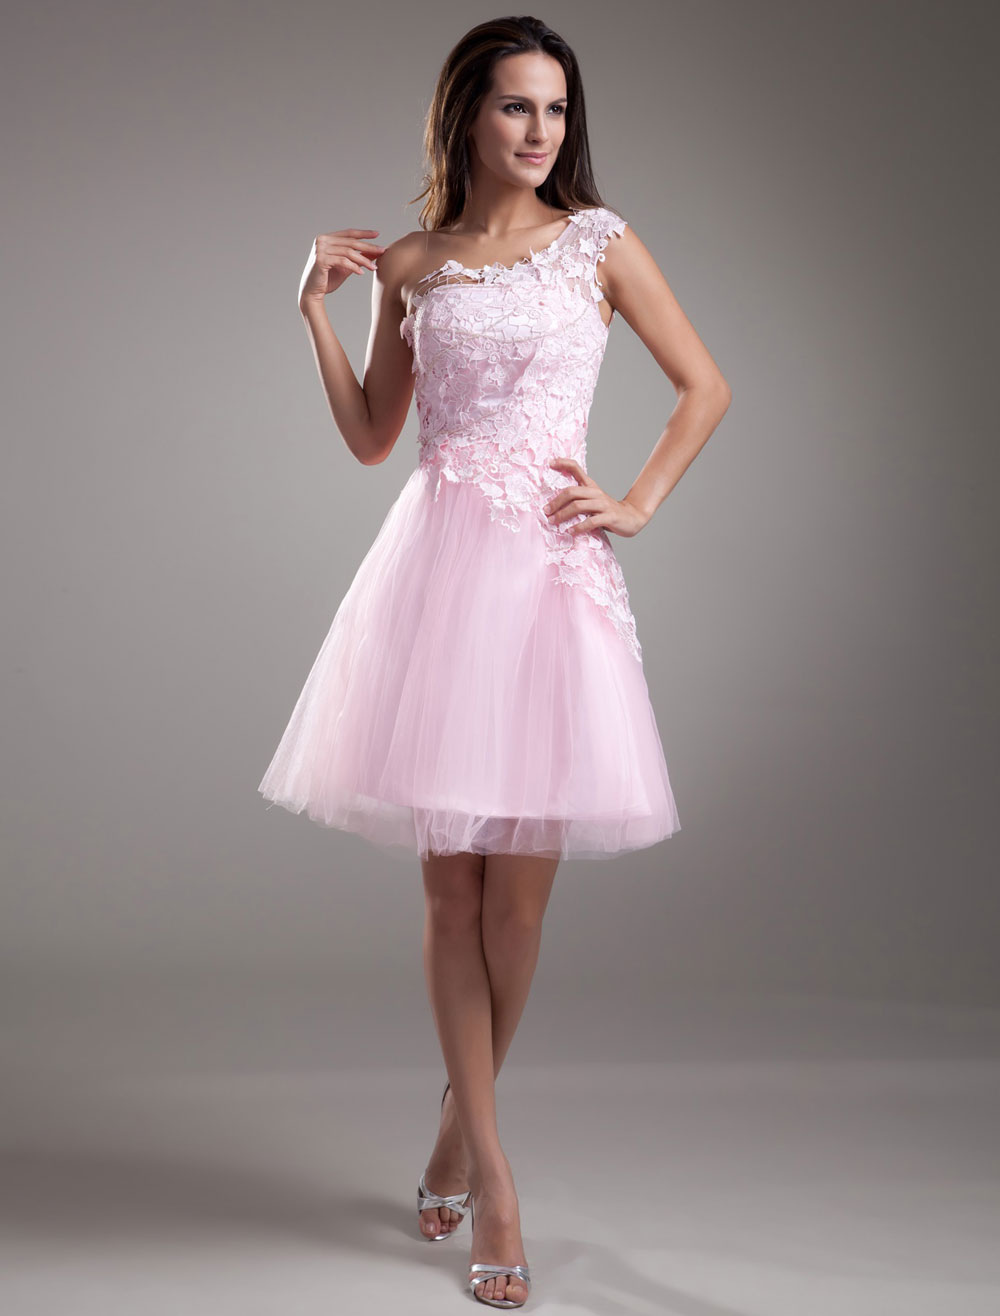 Lace Cocktail Dress One shoulder Short Prom Dress Pink Tulle Party Dress (Wedding Cheap Party Dress) photo